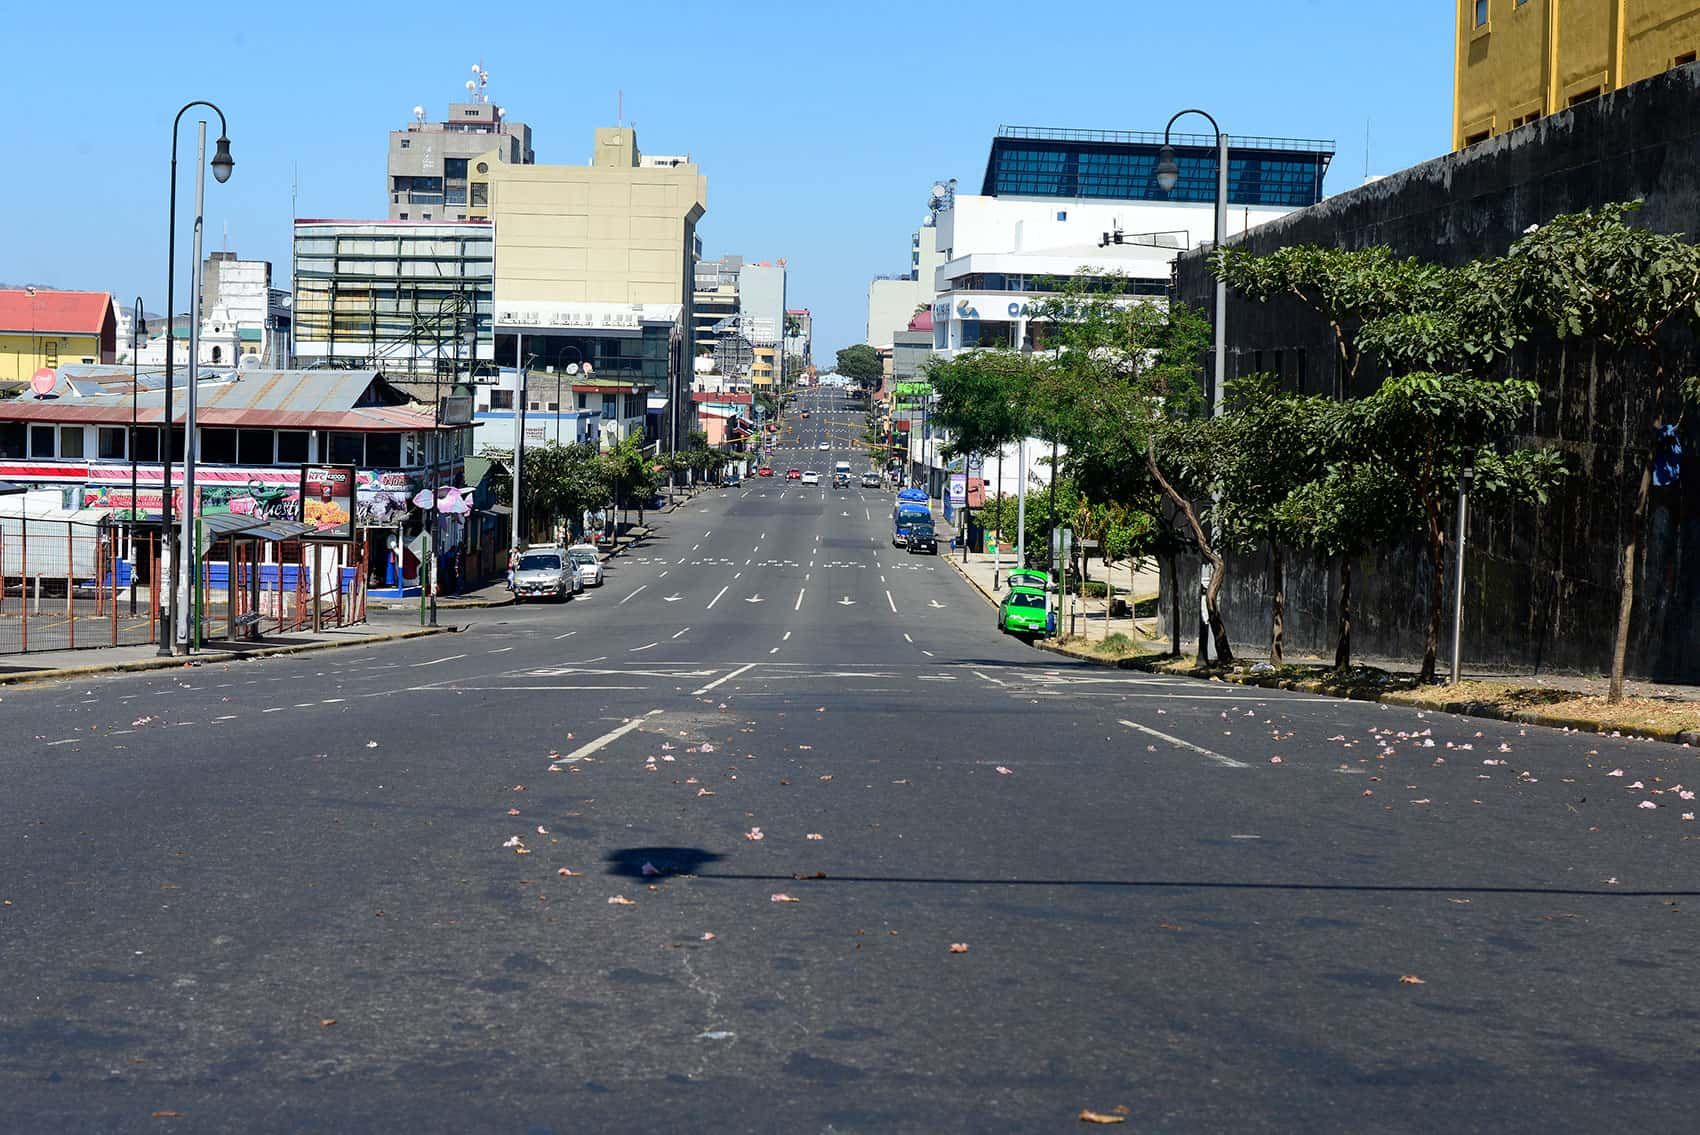 Avenida segunda free of cars on Good Friday.